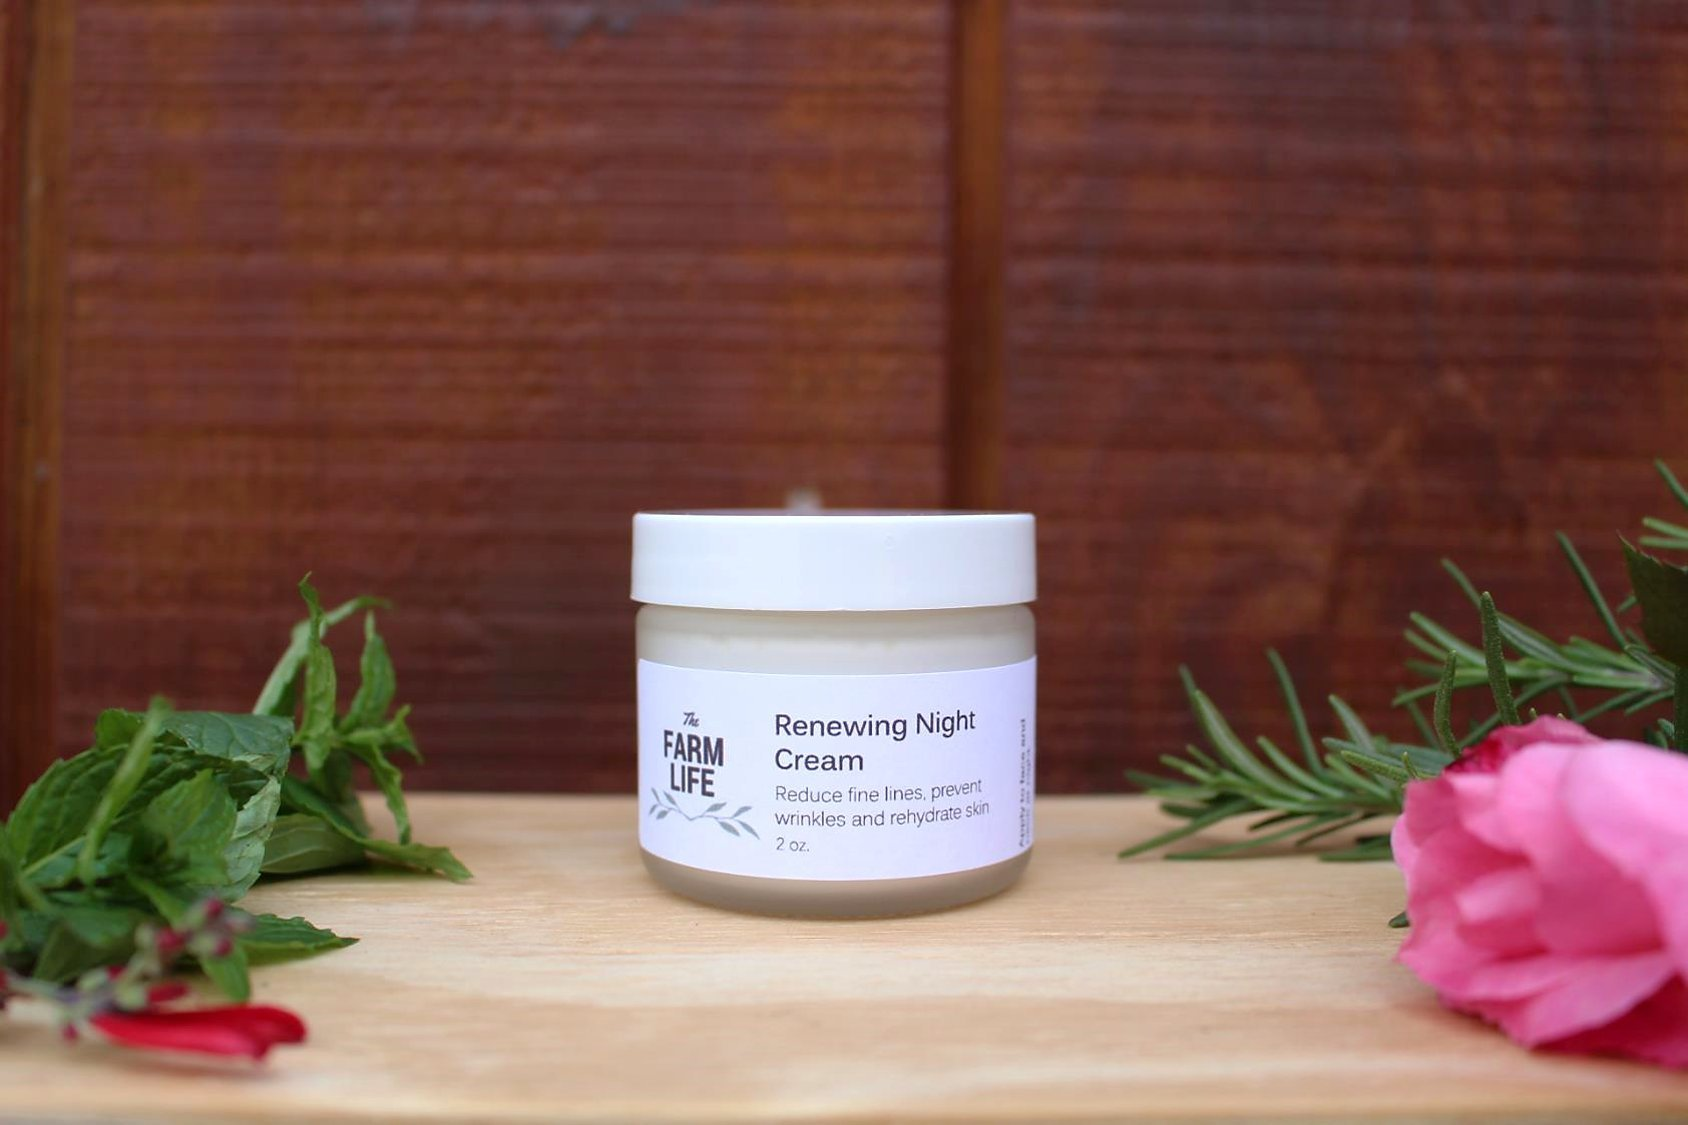 Renewing Night Cream